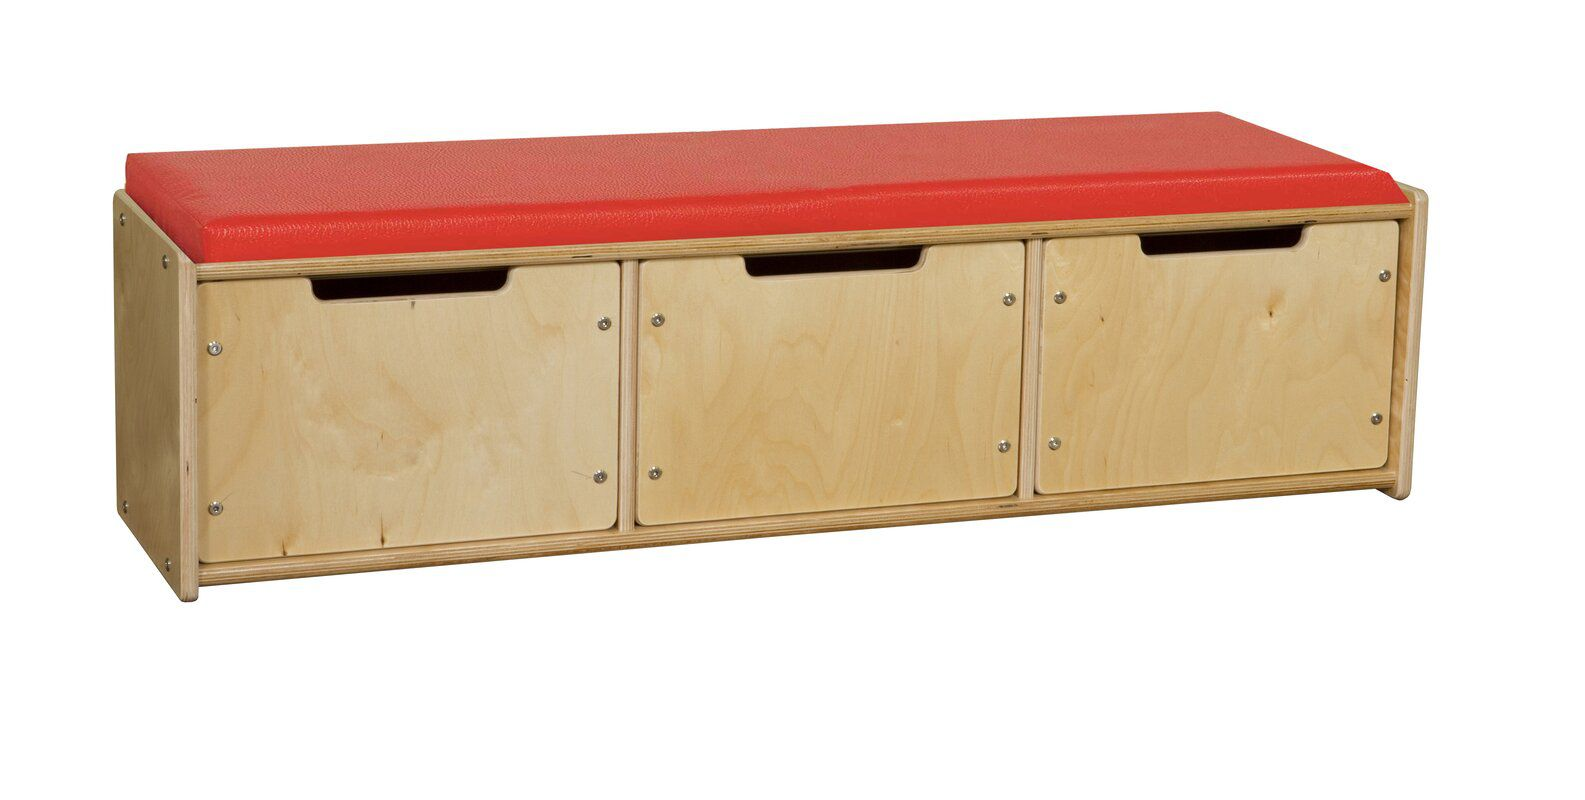 Red-topped wooden storage bench